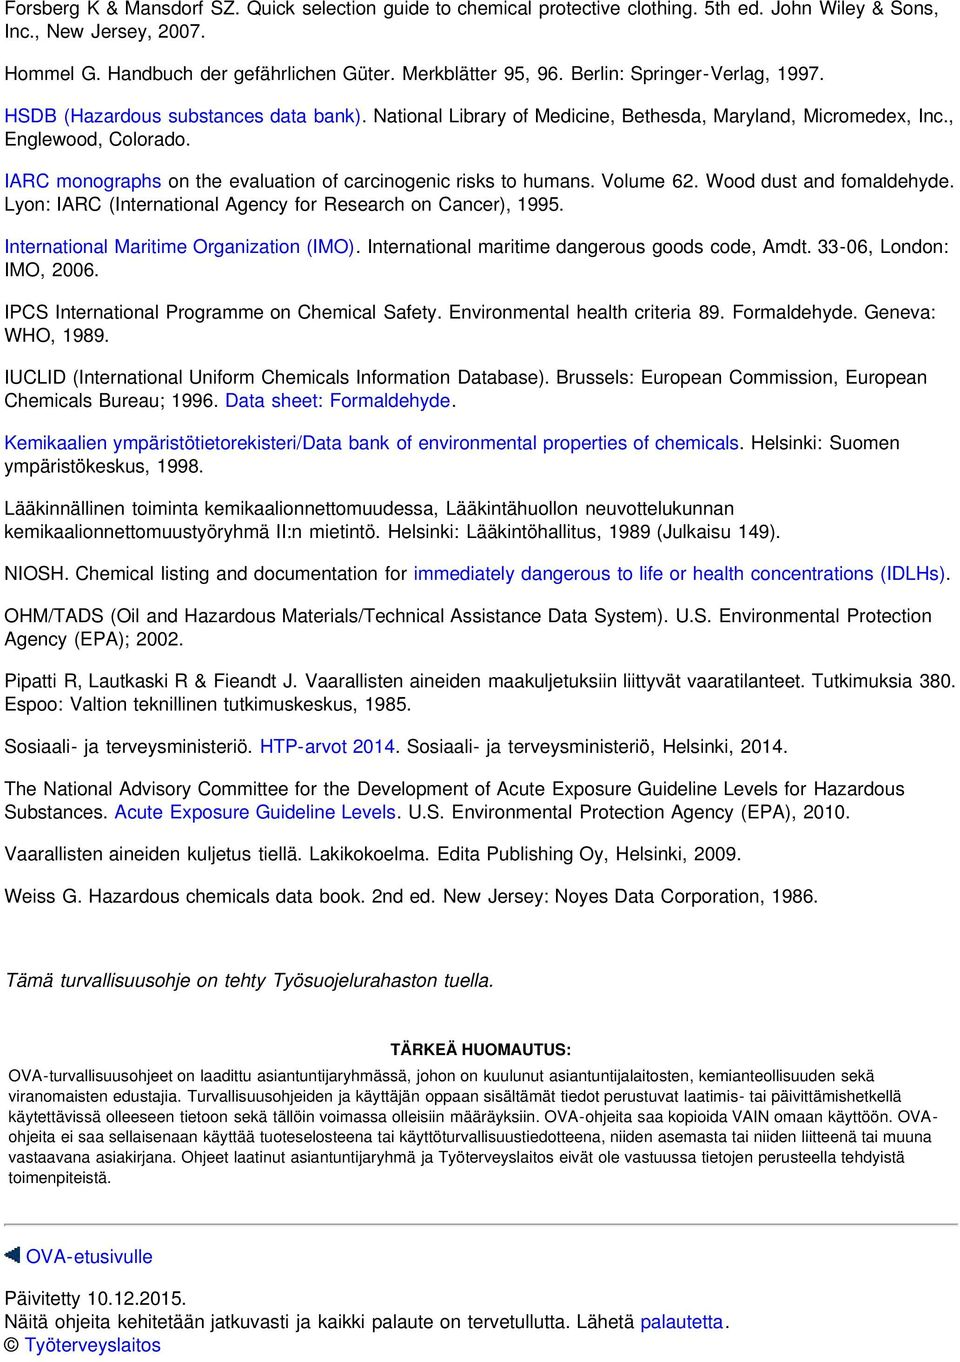 IARC monographs on the evaluation of carcinogenic risks to humans. Volume 62. Wood dust and fomaldehyde. Lyon: IARC (International Agency for Research on Cancer), 1995.